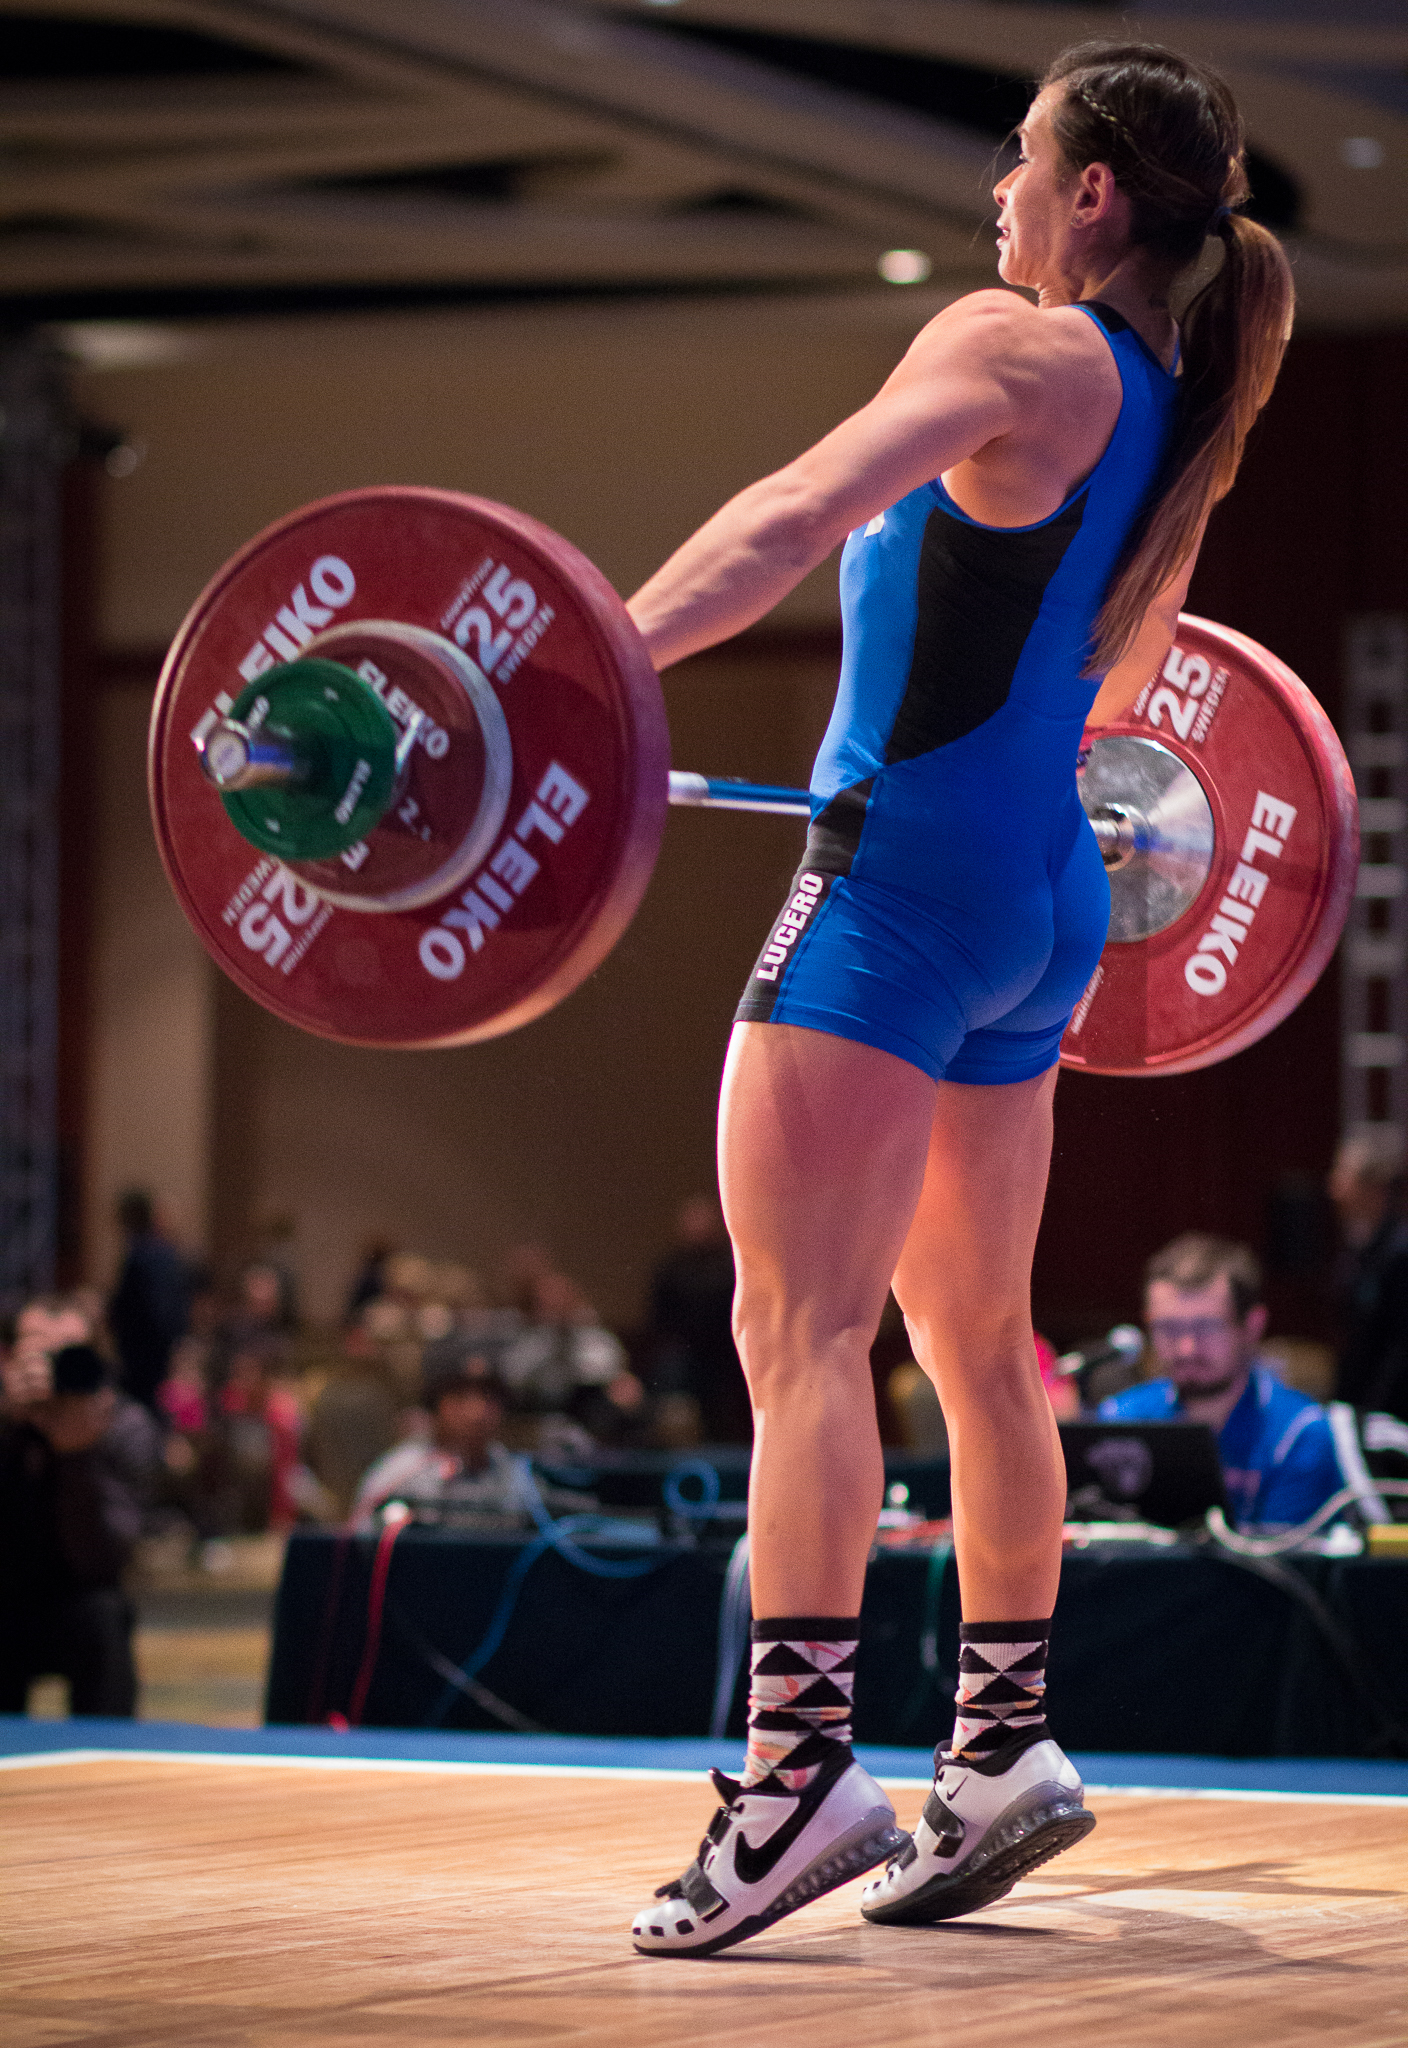 american-open-photos-session-a-weightlifters-weightlifting-photography-everyday-lifters (5 of 10).jpg